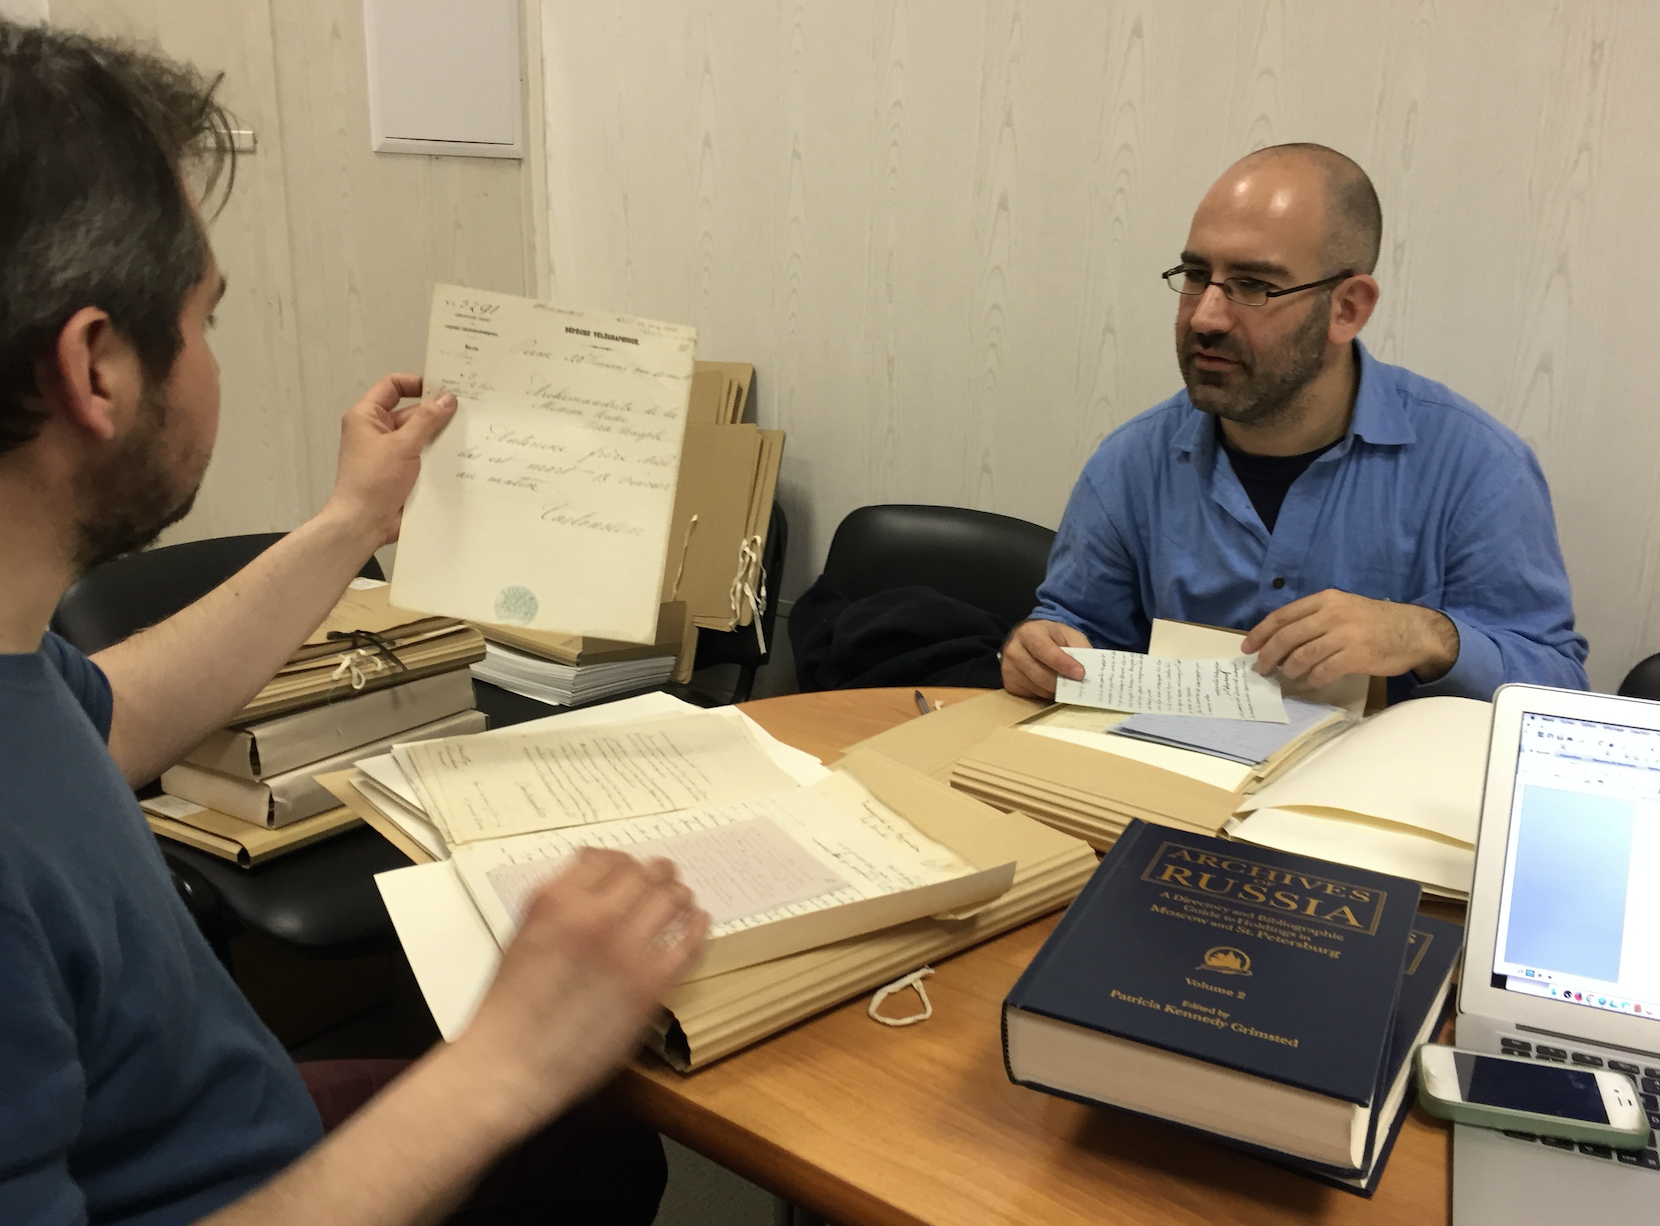 Image 8. Angelos Dalachanis and Yann Potin at work in the Archives of the Saint Petersburg Academy of Sciences